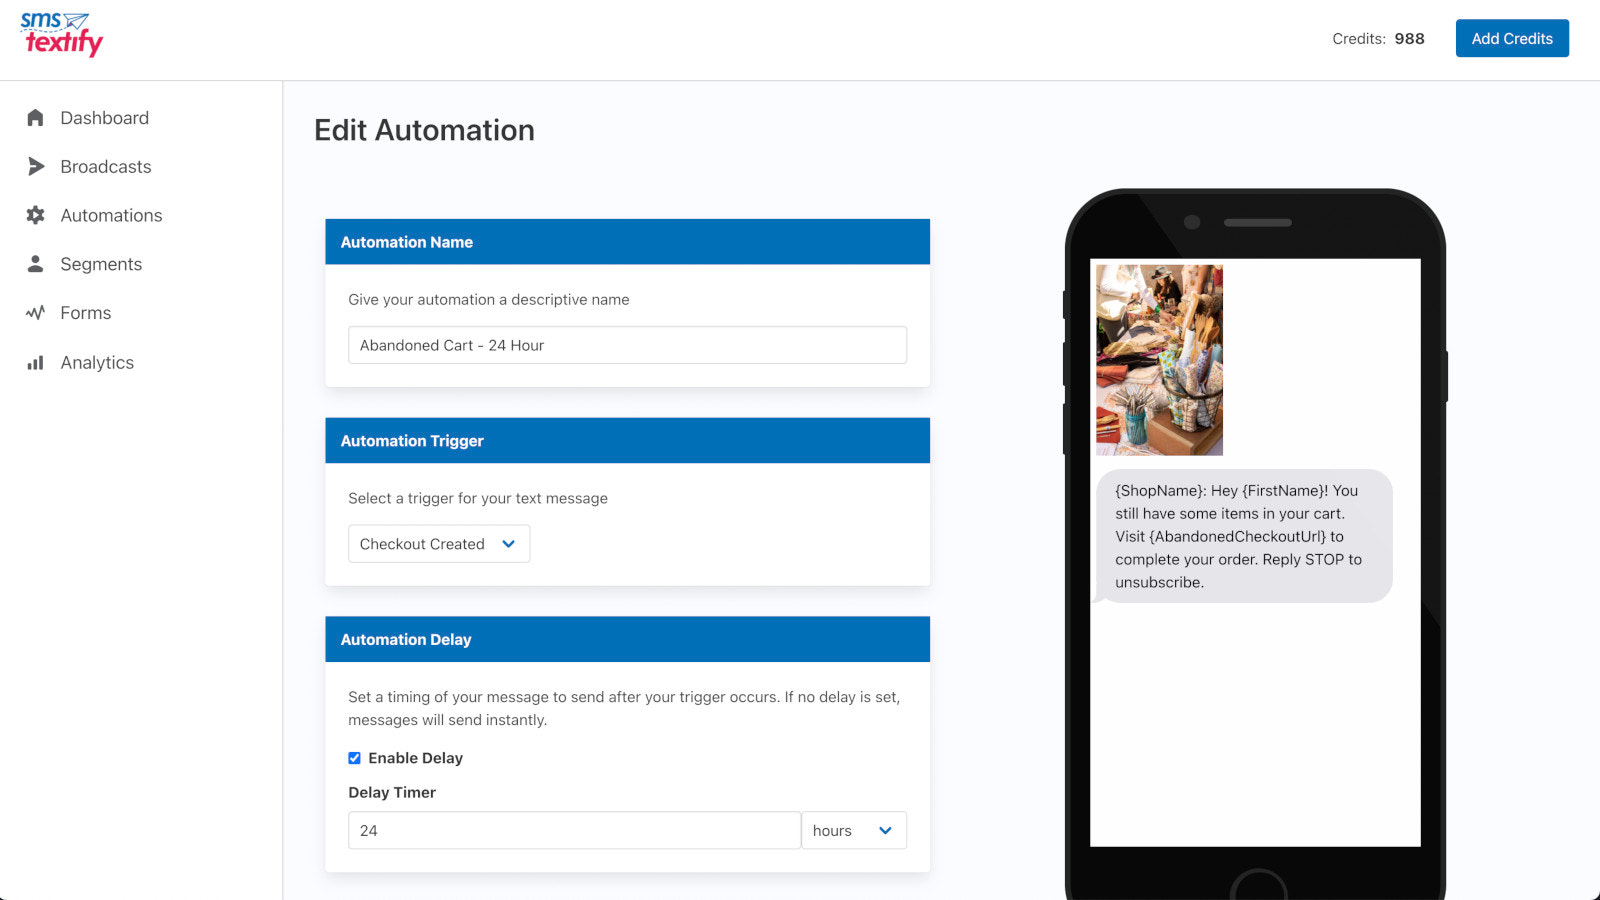 SMS Textify Automation Screenshot